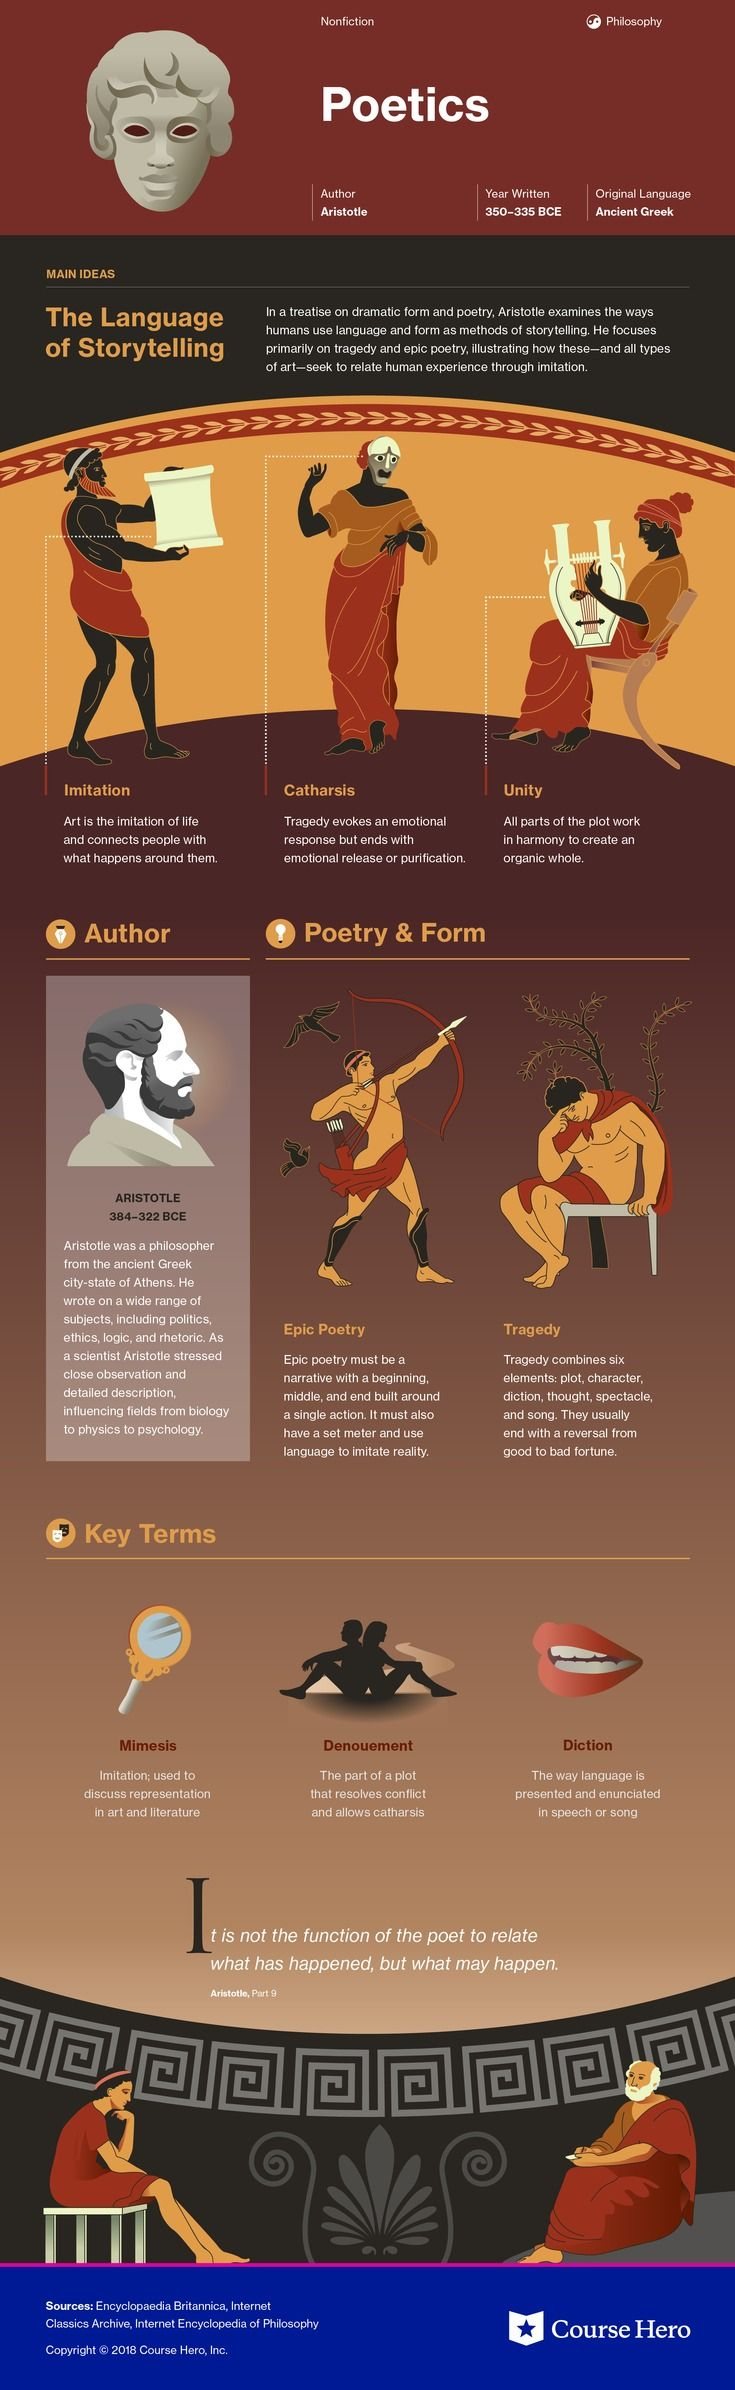 This @CourseHero infographic on Poetics is both visually stunning and informative!